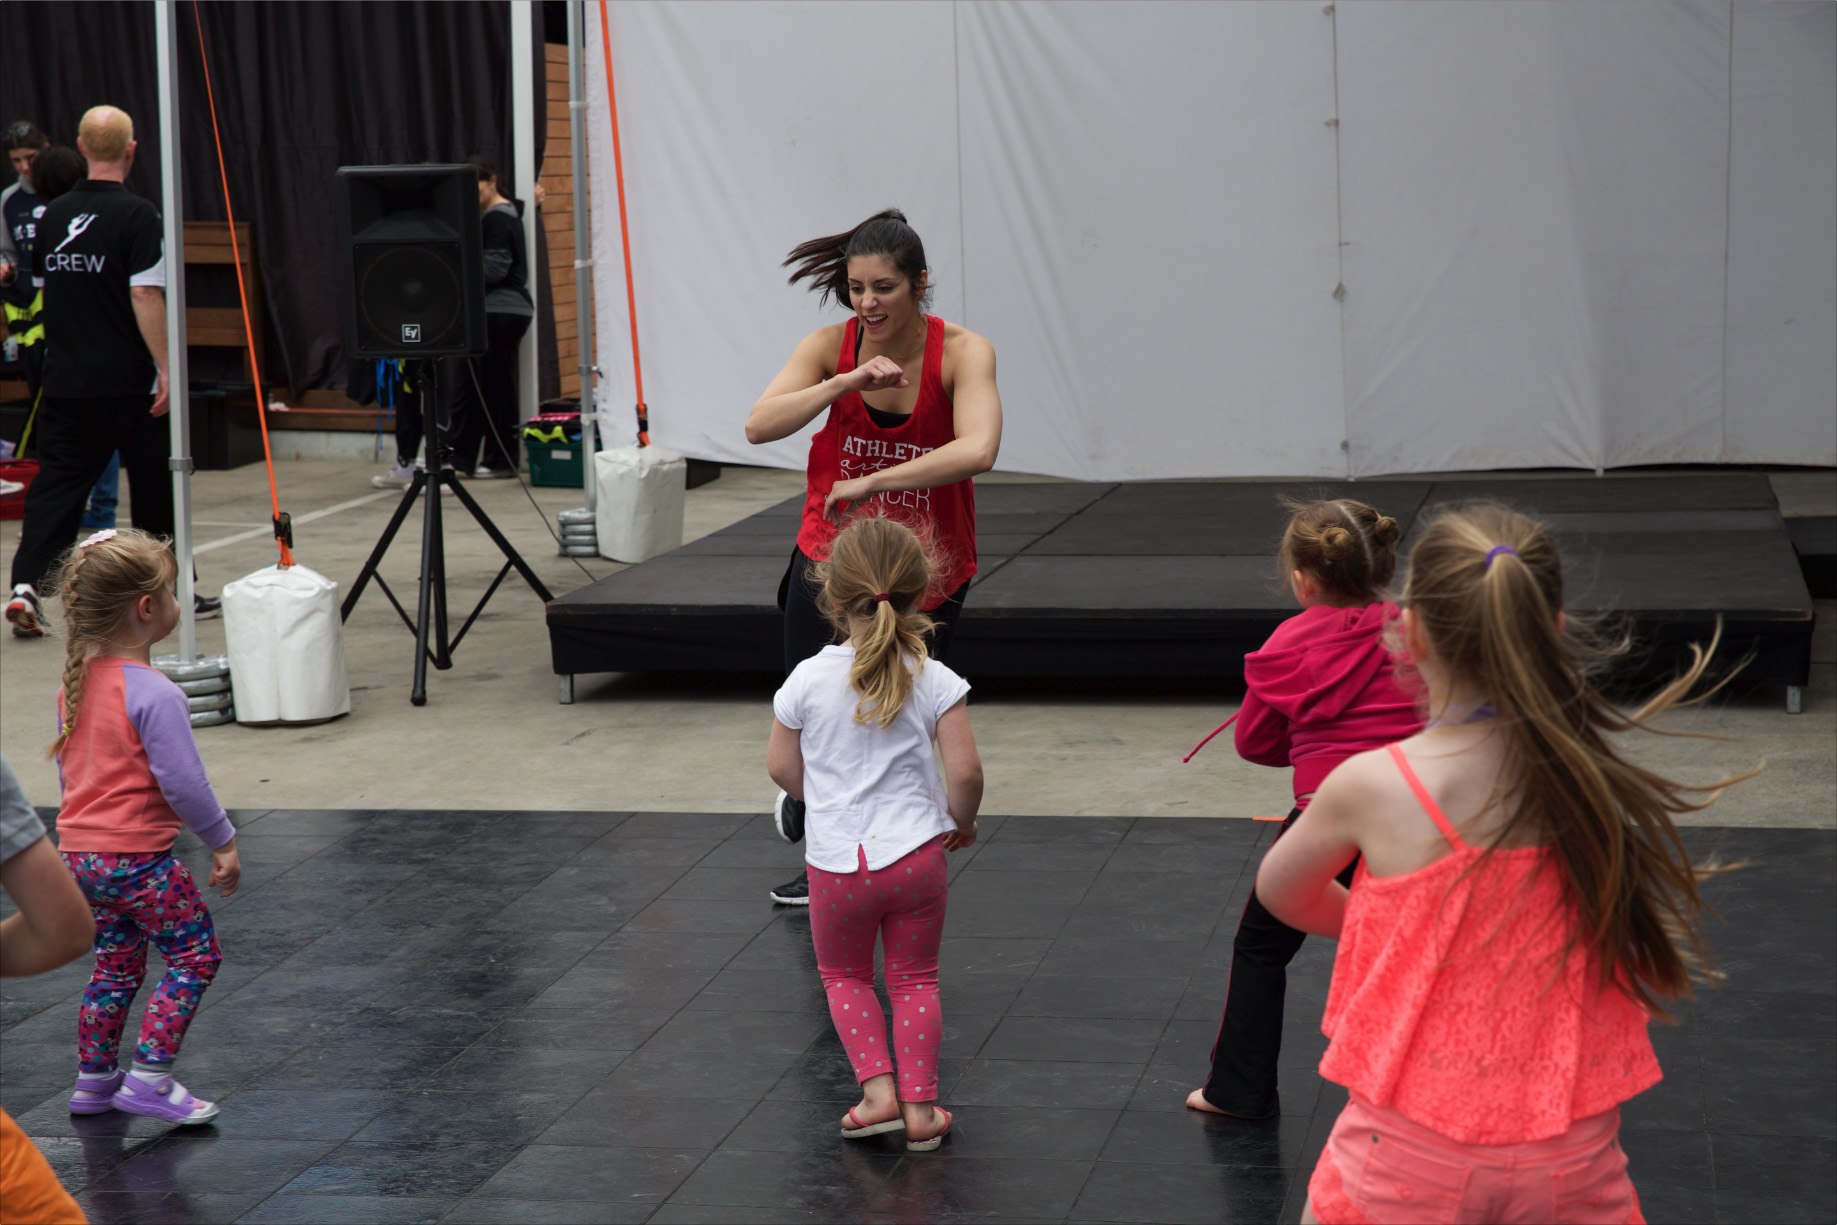 Christina shows of her muscles during Hip Hop class!